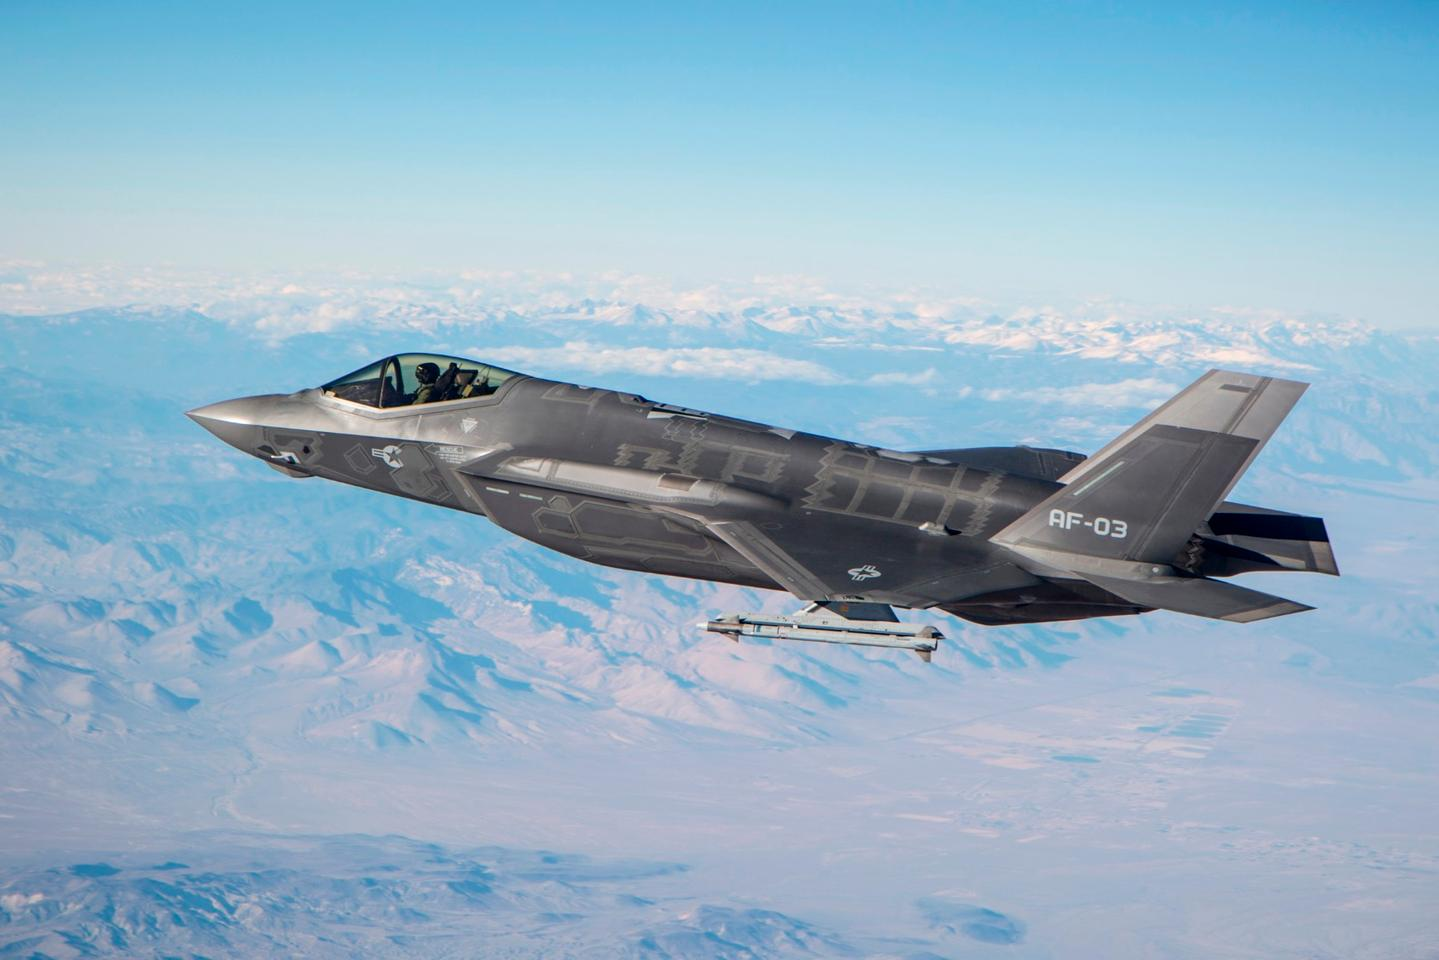 An F-35A conducts testing with an AIM-9X over the skies of California